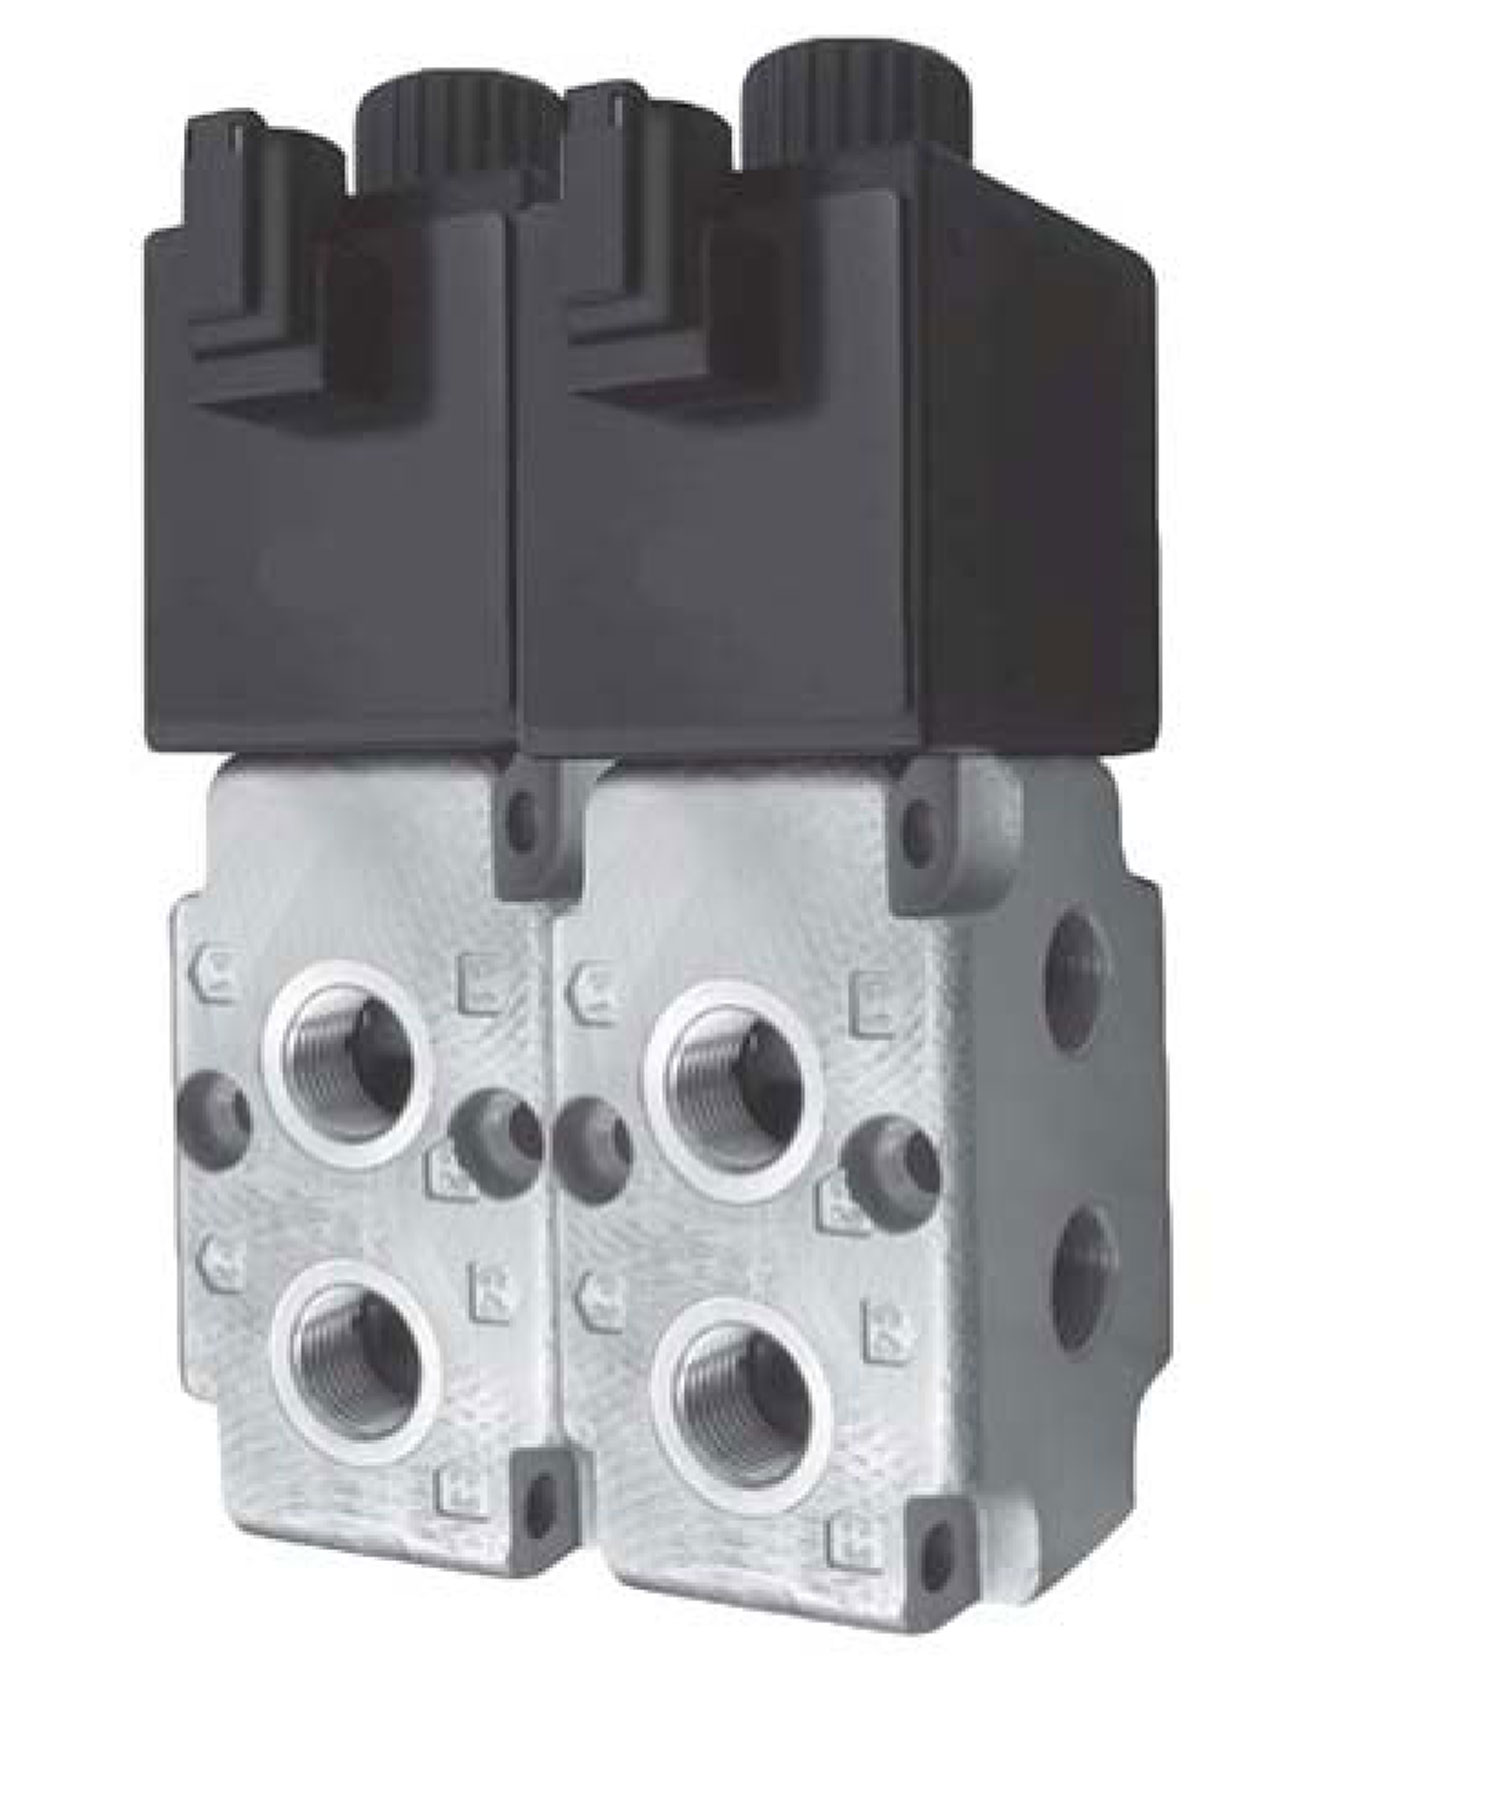 Double Valve Kit - Kit Contains Two Stacked Valves 24 GPM Capacity And Fittings, Switch, Wiring Harness, And Brackets